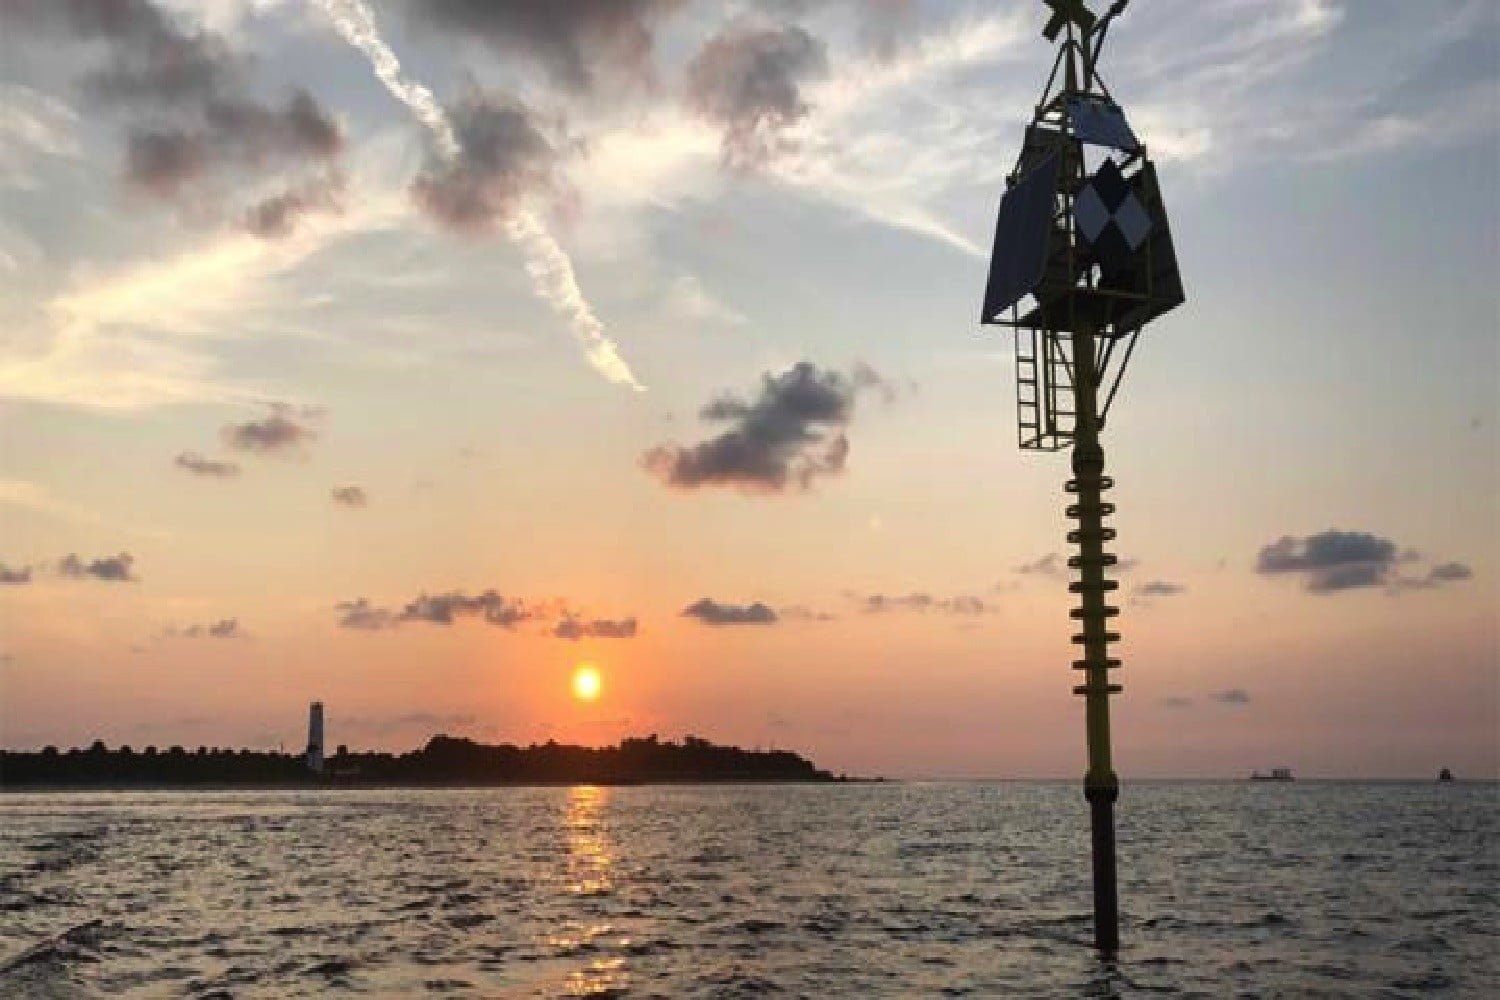 This groundbreaking new buoy can predict earthquakes and tsunamis. Here's how